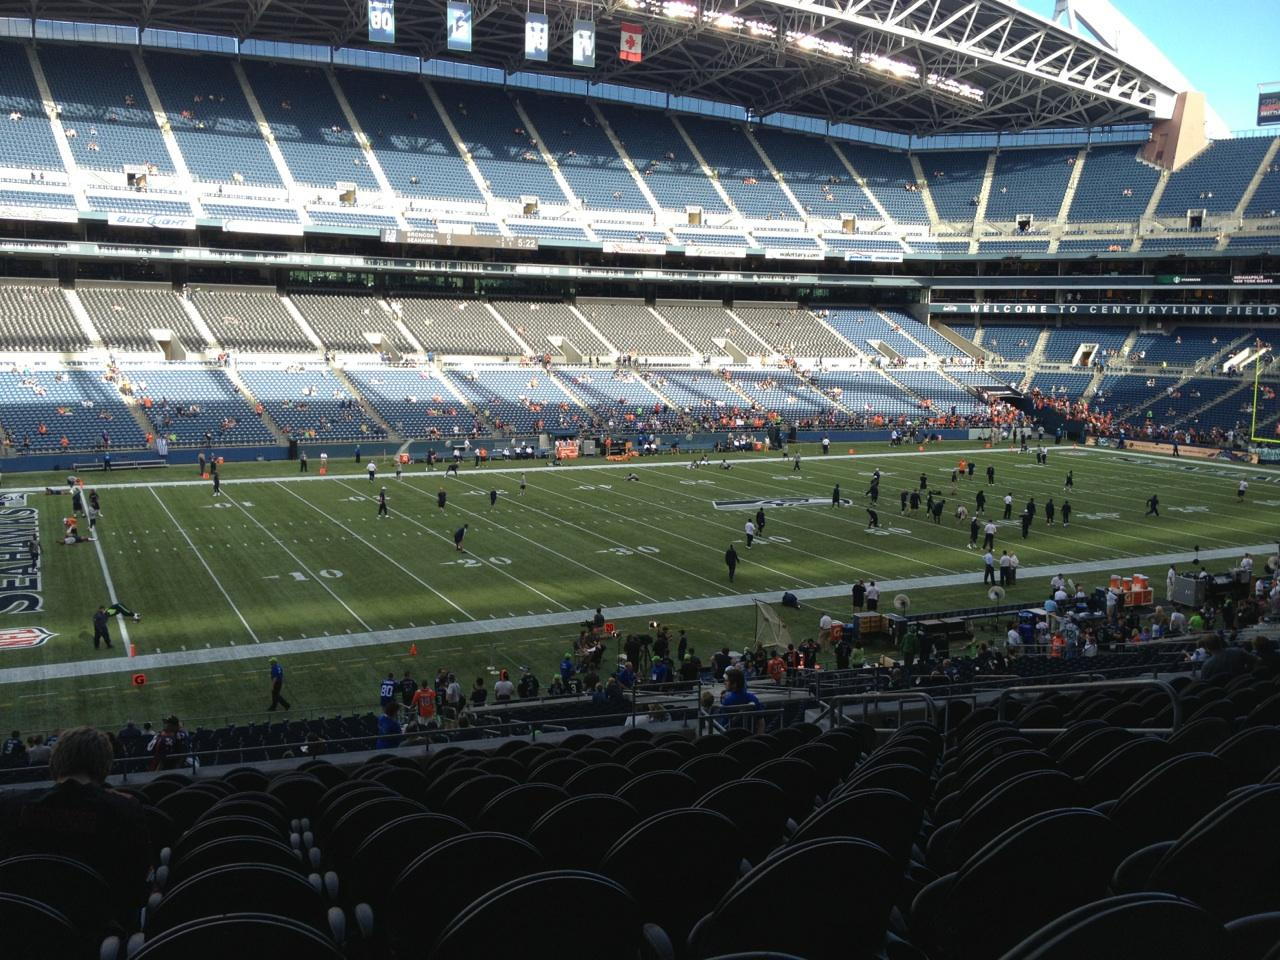 View From Club Section 239 at CenturyLink Field